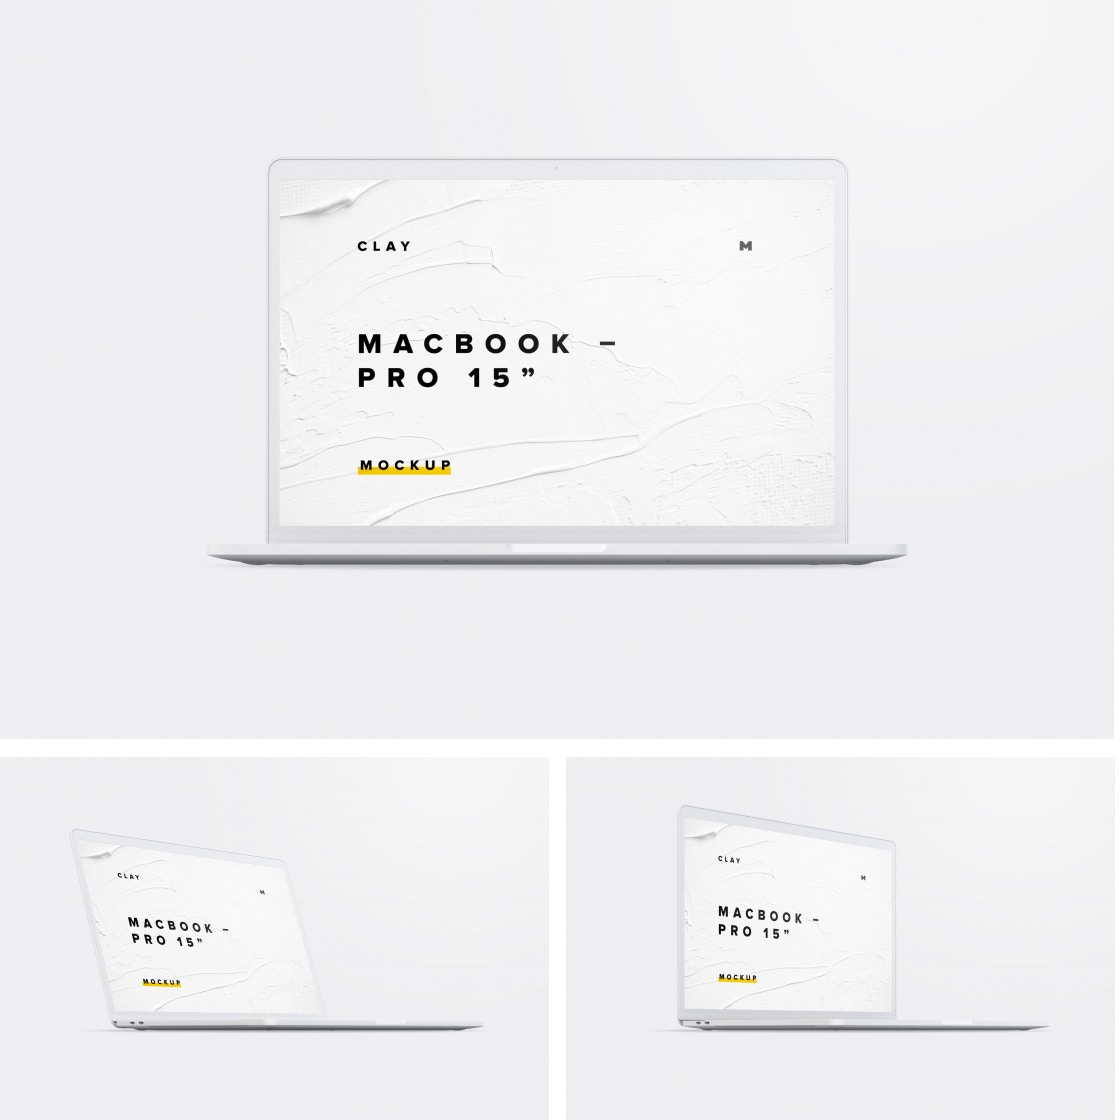 Clay MacBook Pro 15 Mockups by Original Mockups on Original Mockups